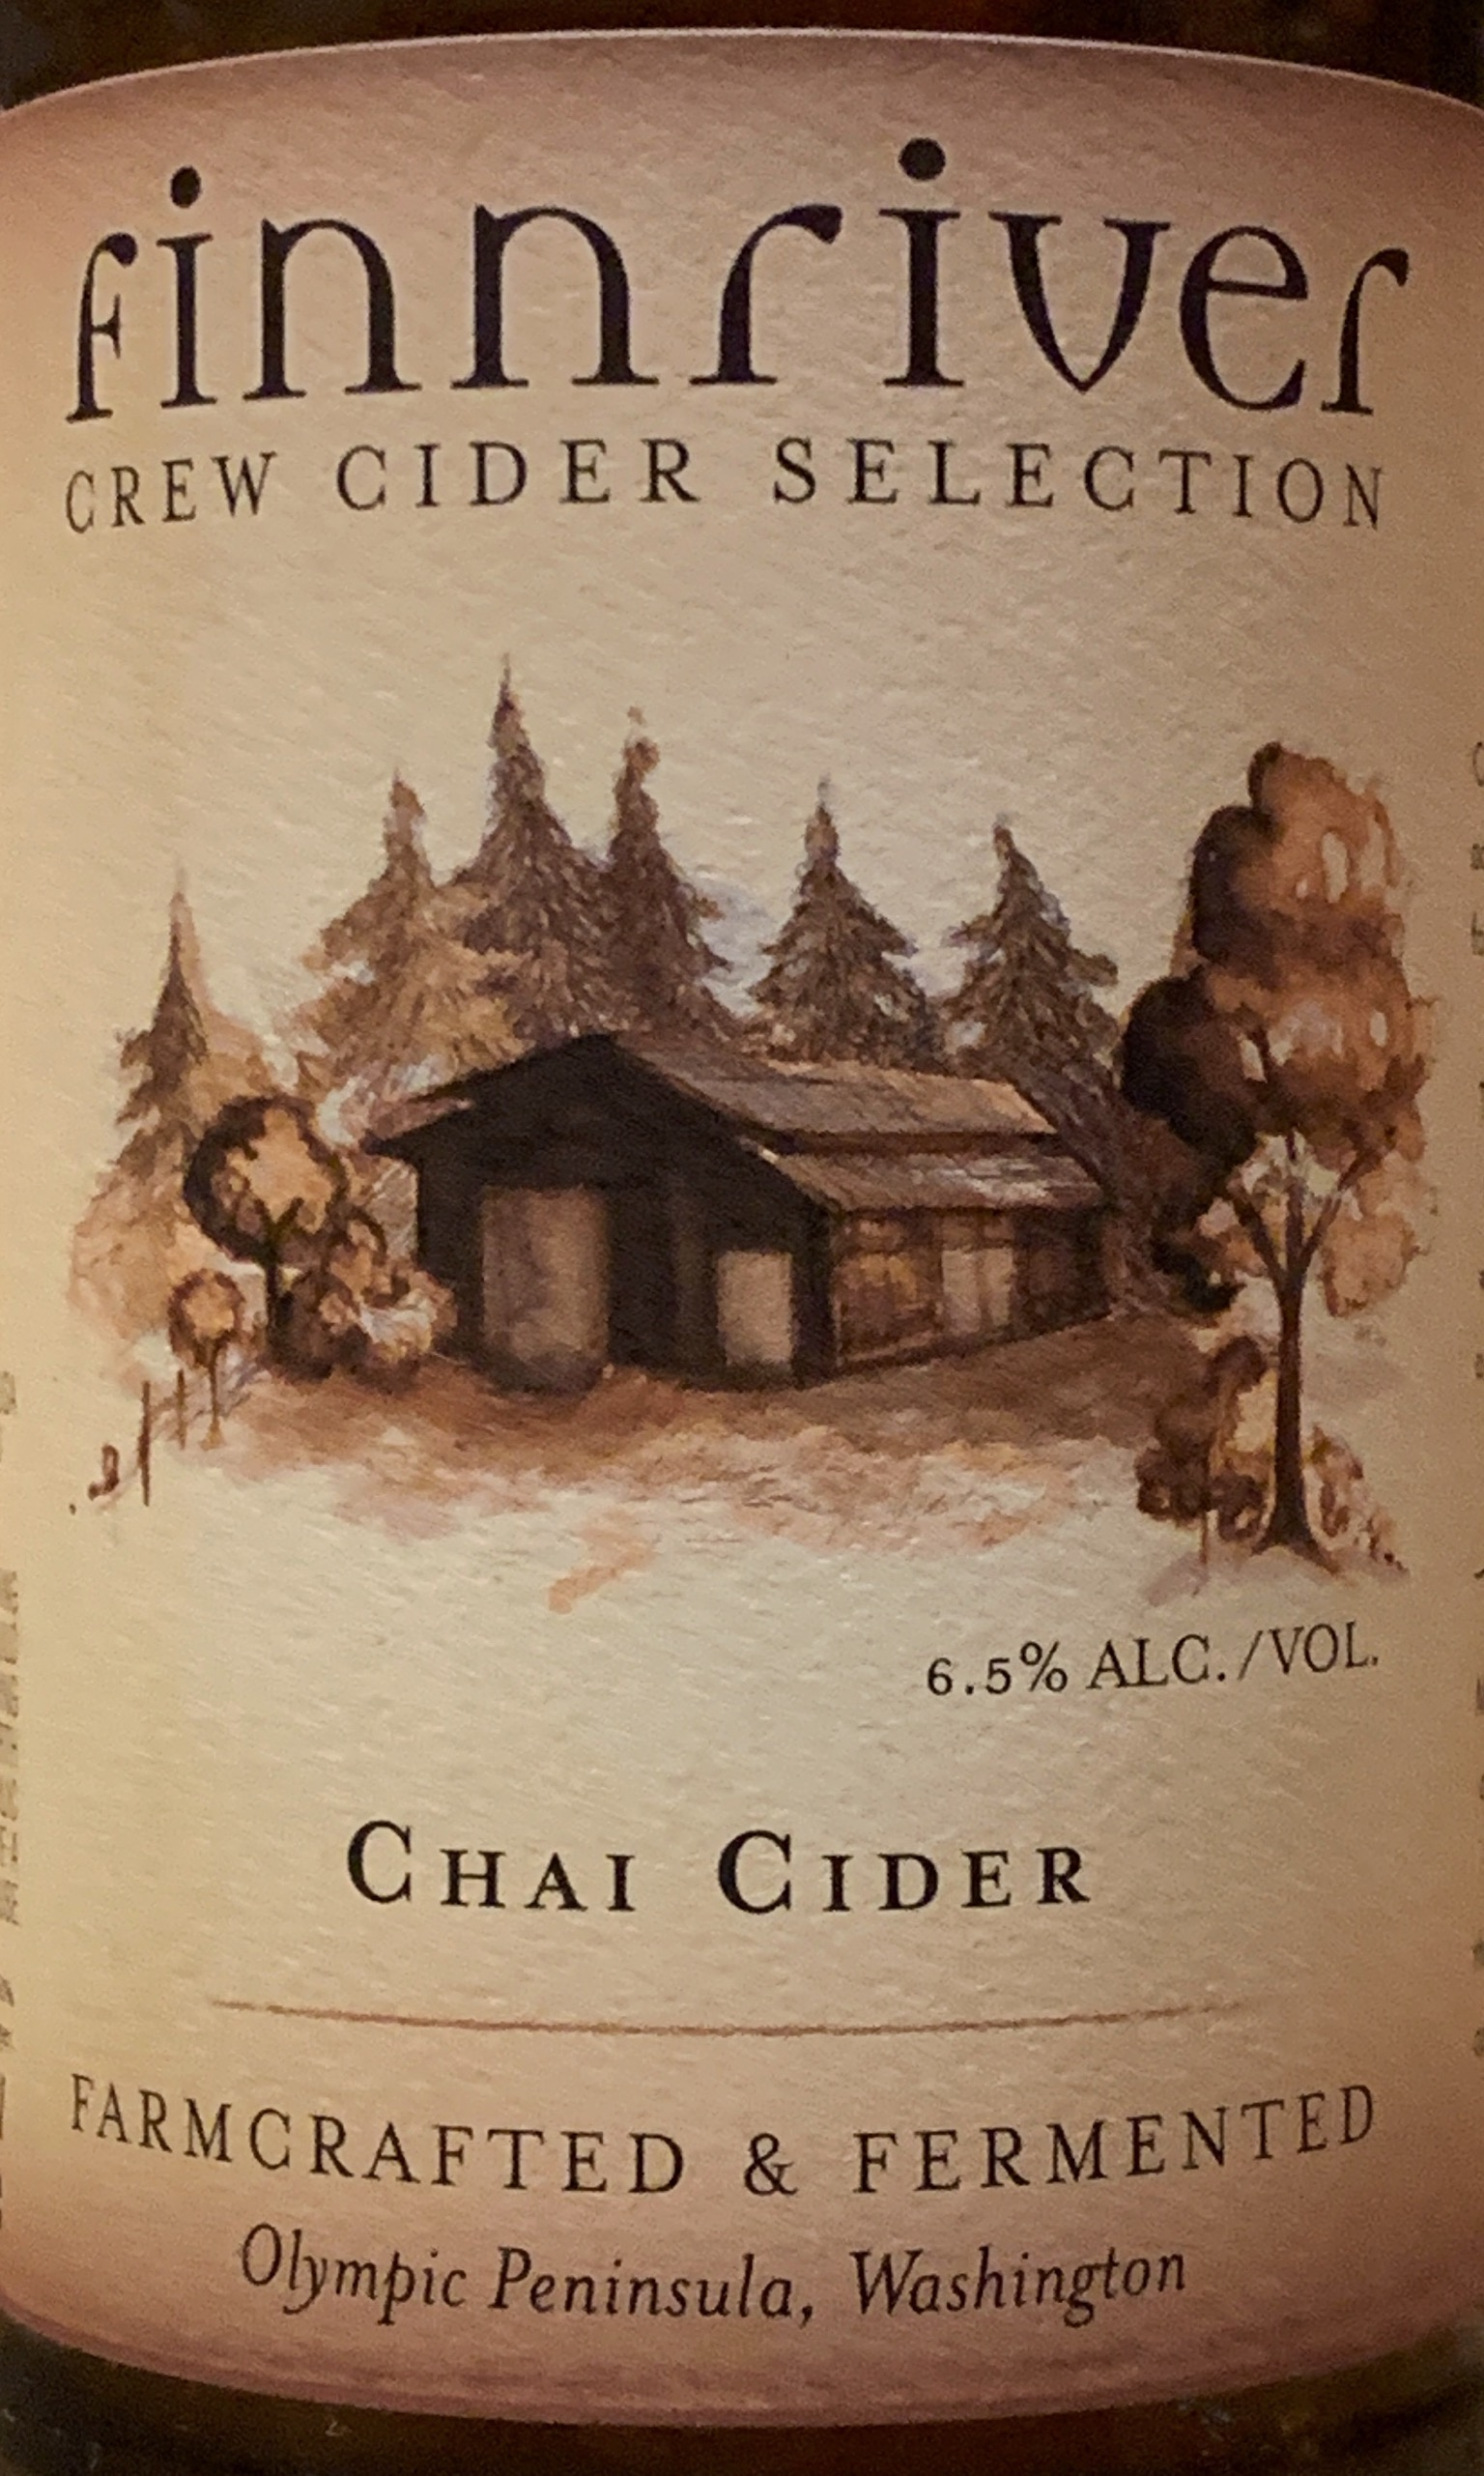 Crew Cider Selection - Chai Cider